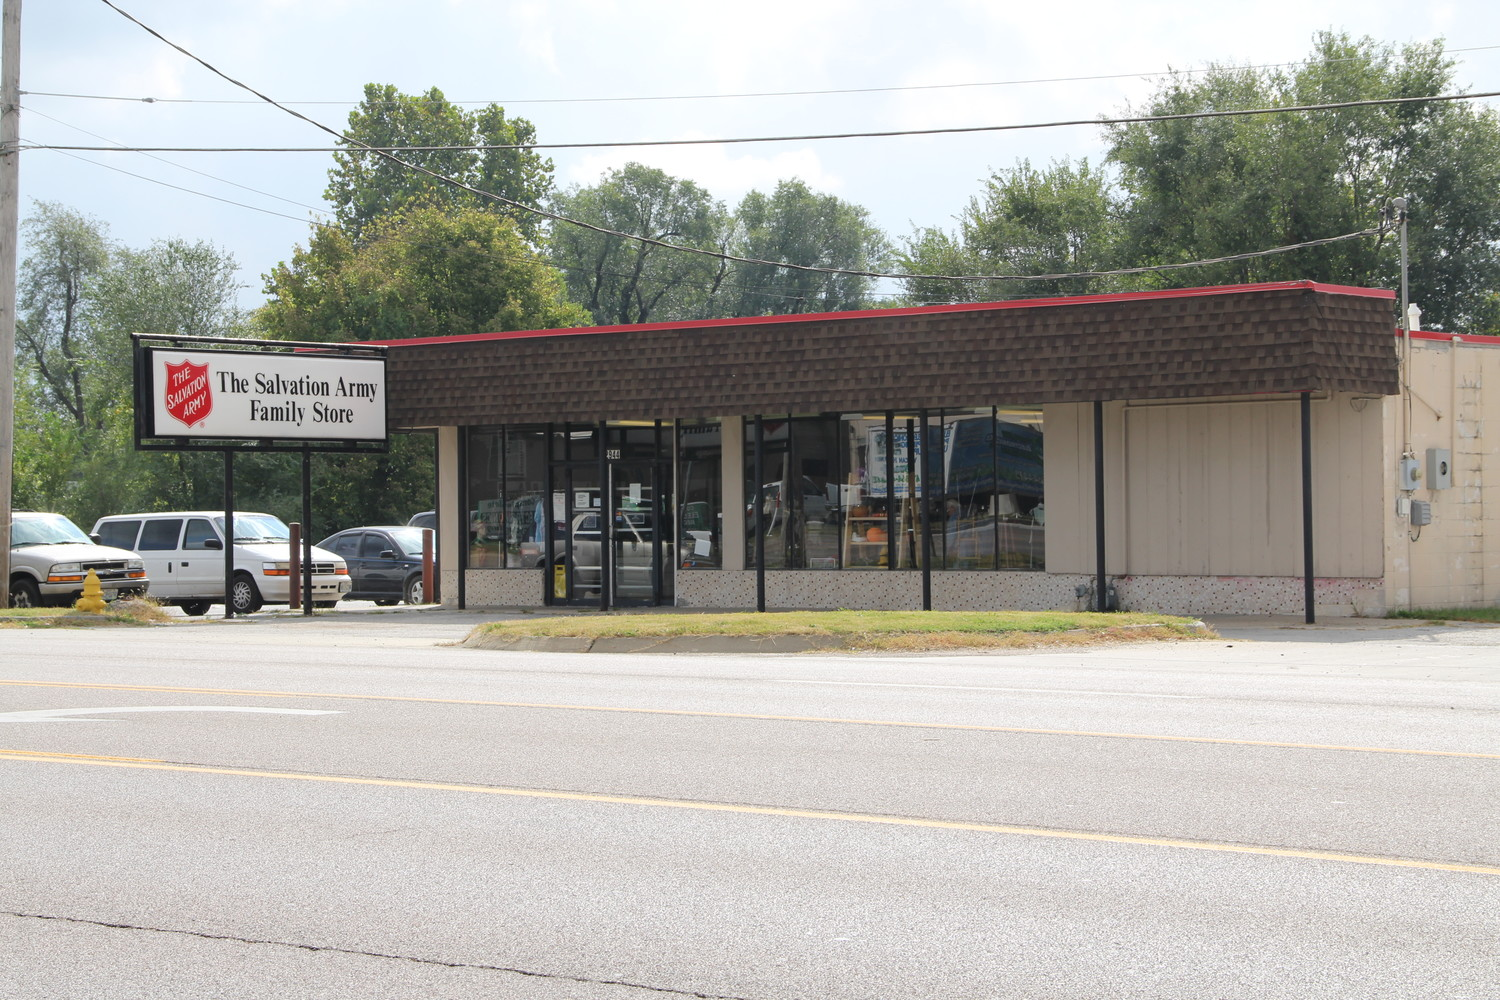 The Chestnut Expressway shop will be used for storage and likely sold in the future.